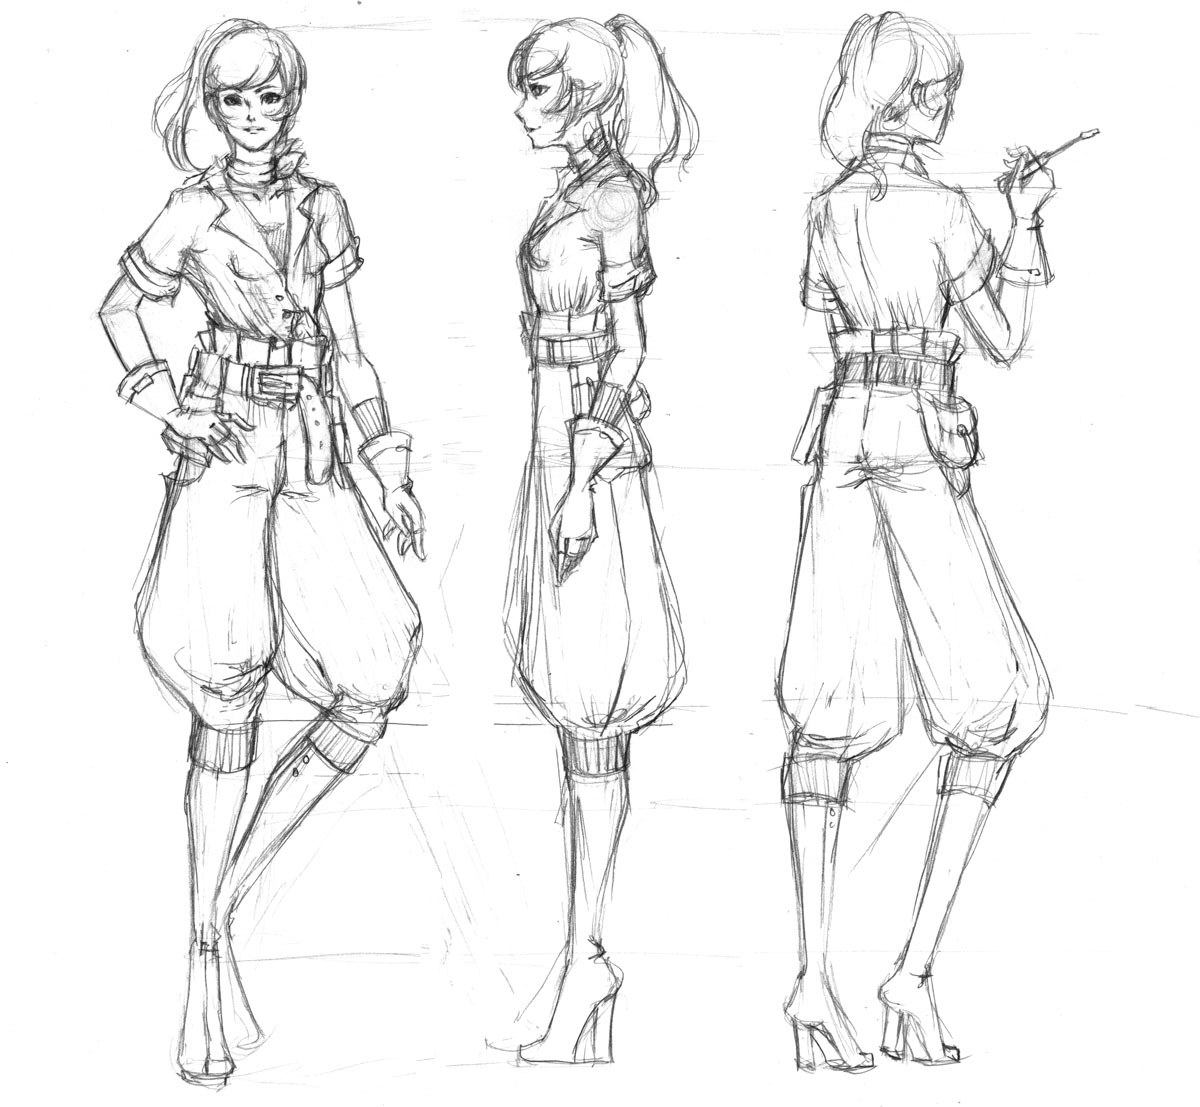 otis character concepts for spring 2013 shaina reyes porco rosso